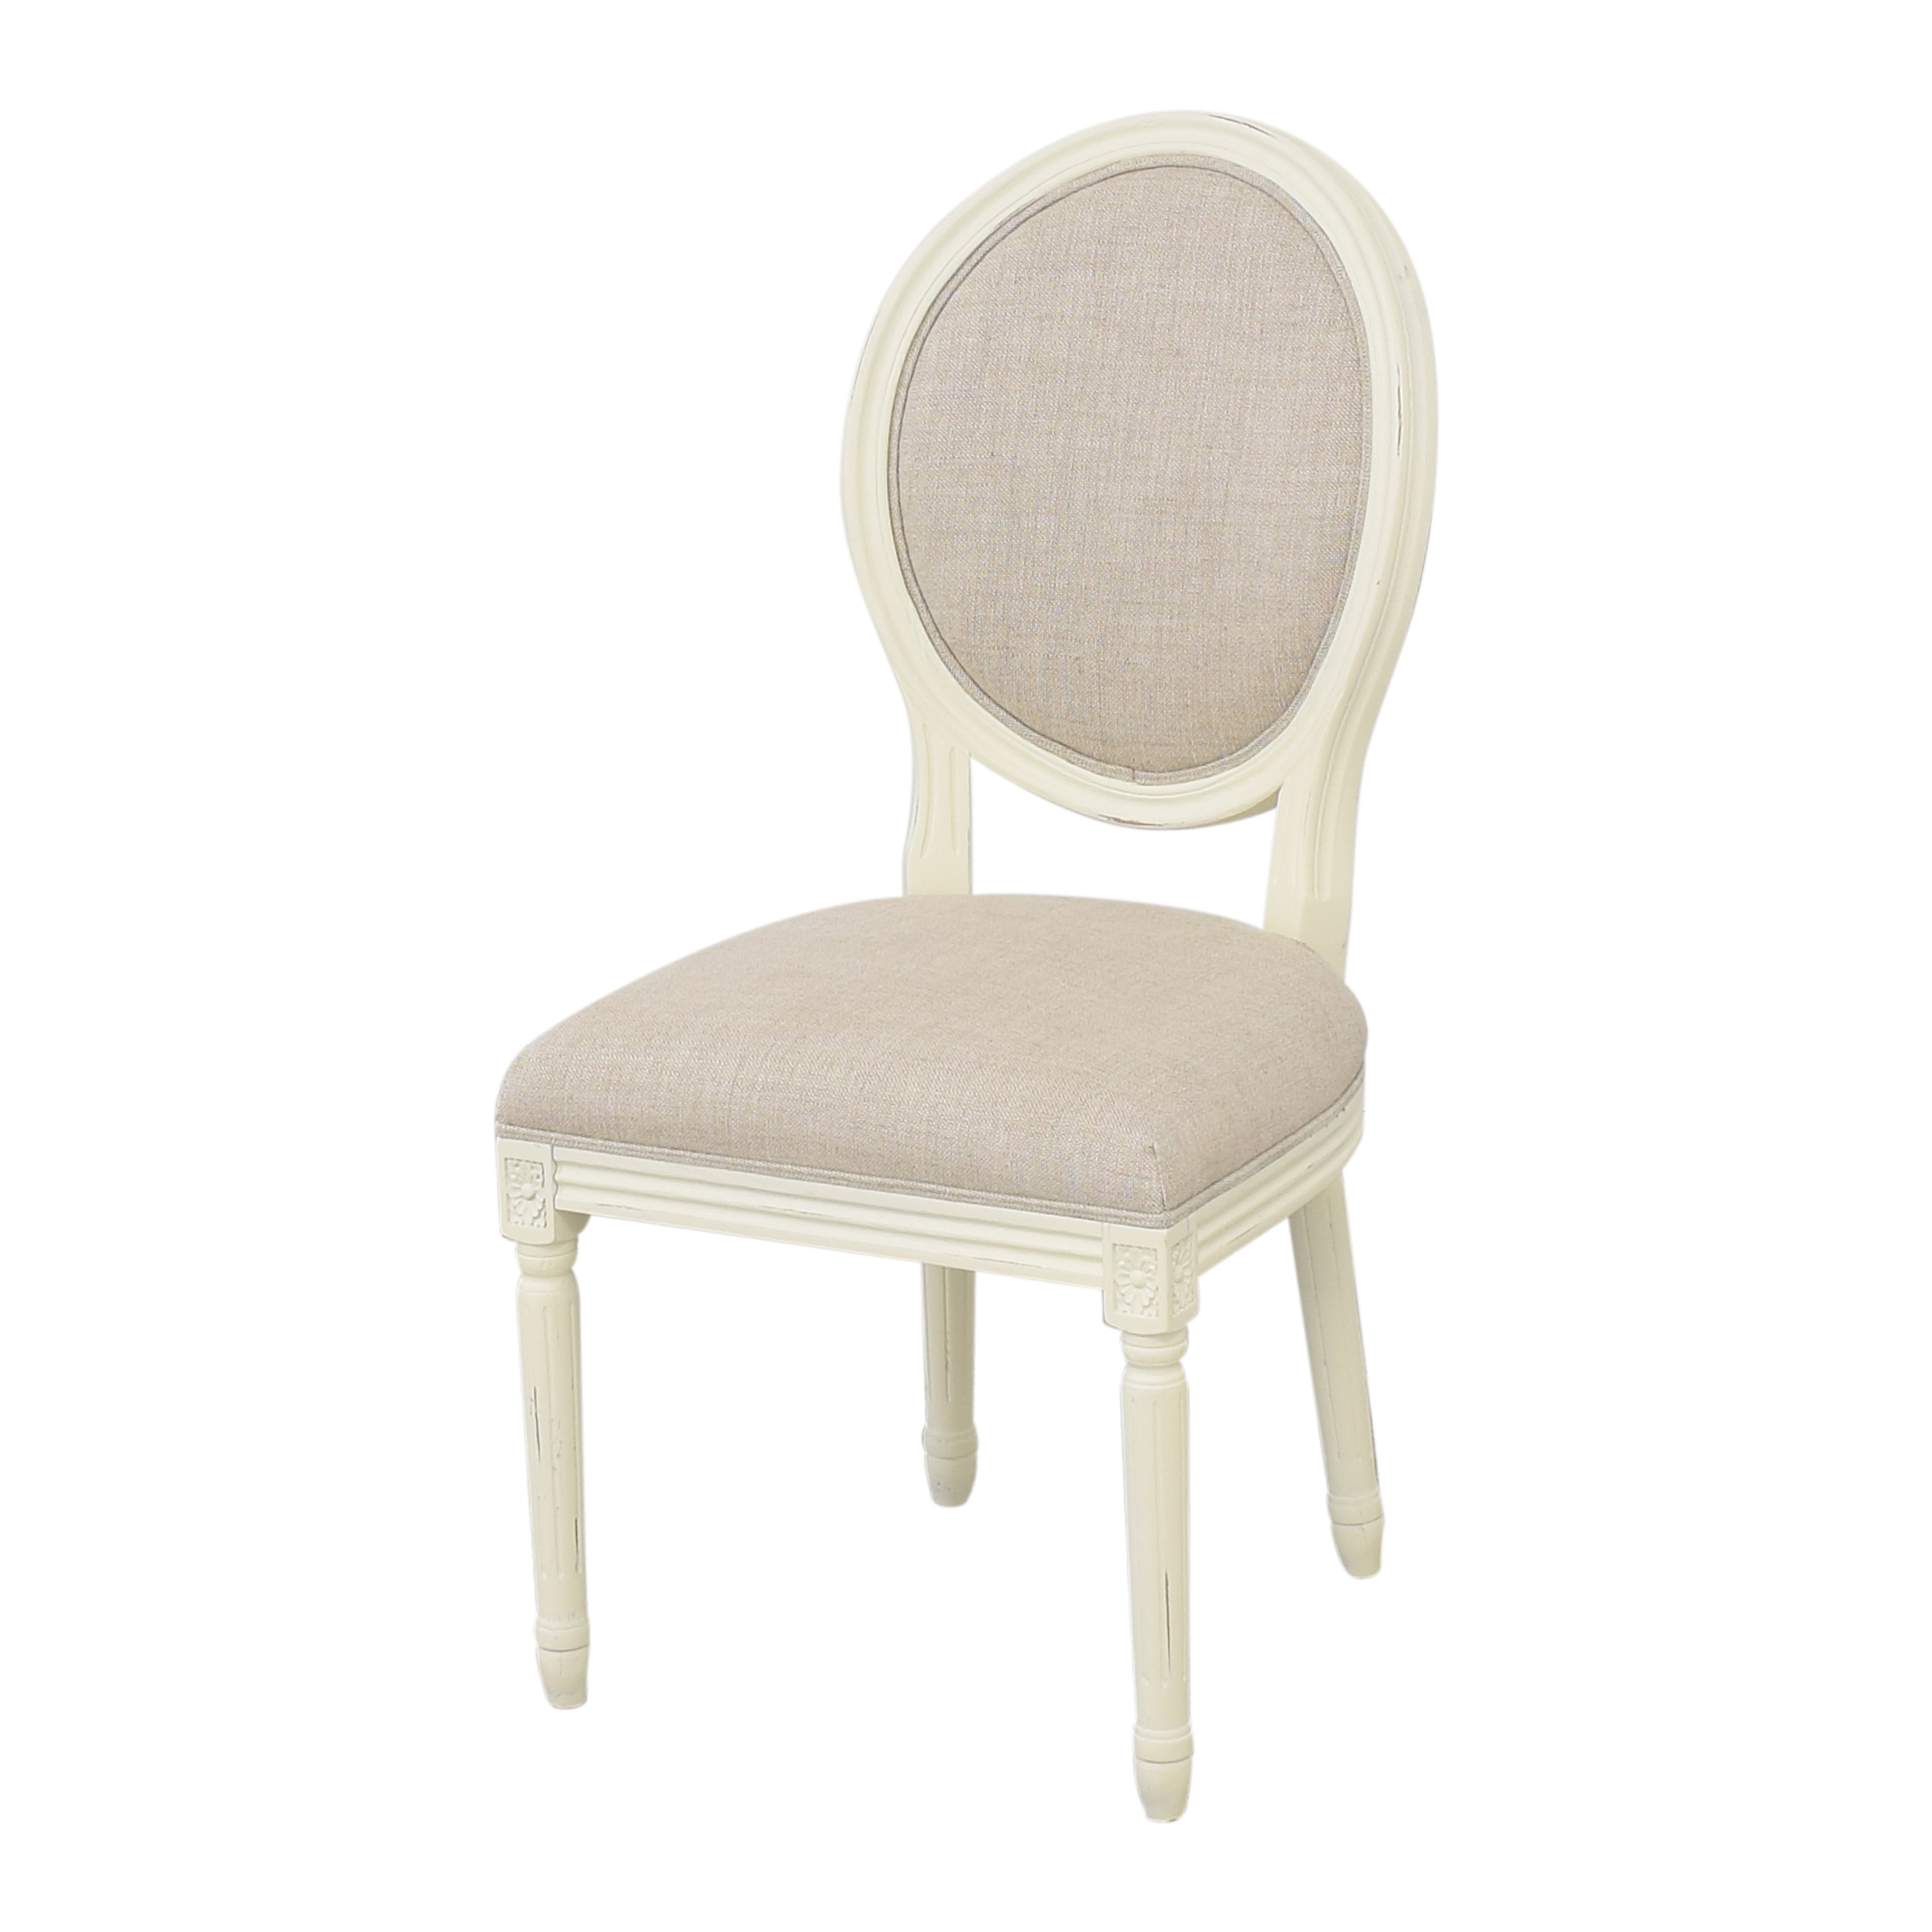 Restoration Hardware Restoration Hardware Vintage French Round Side Chairs dimensions